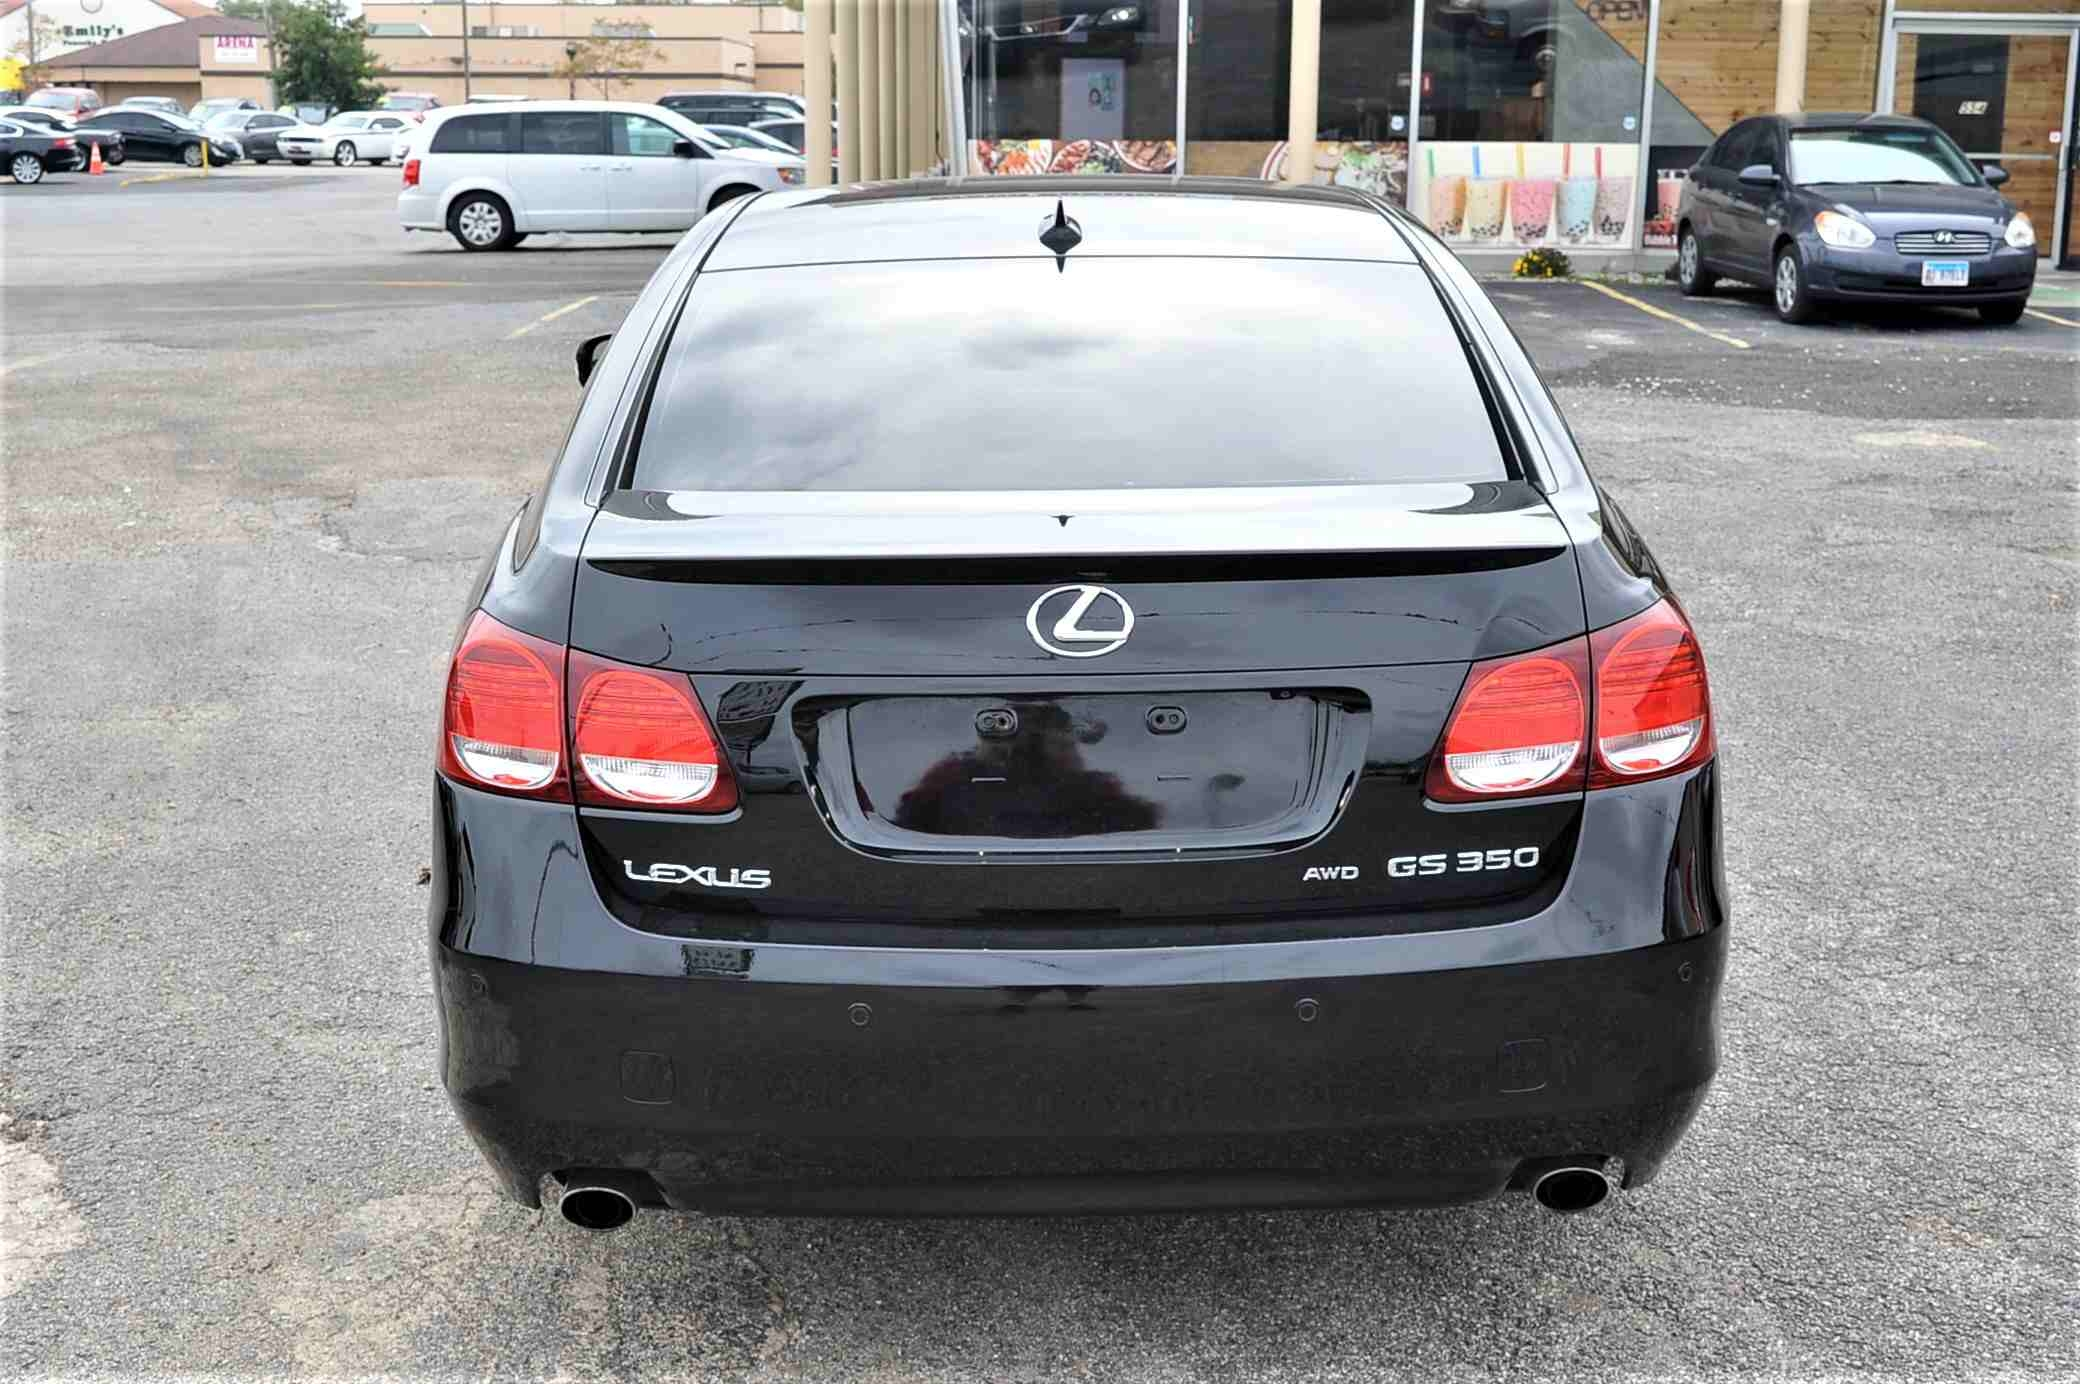 2008 Lexus GS350 Navigation Black AWD Sedan Sale Fox River Grove Grayslake Volo Waucanda